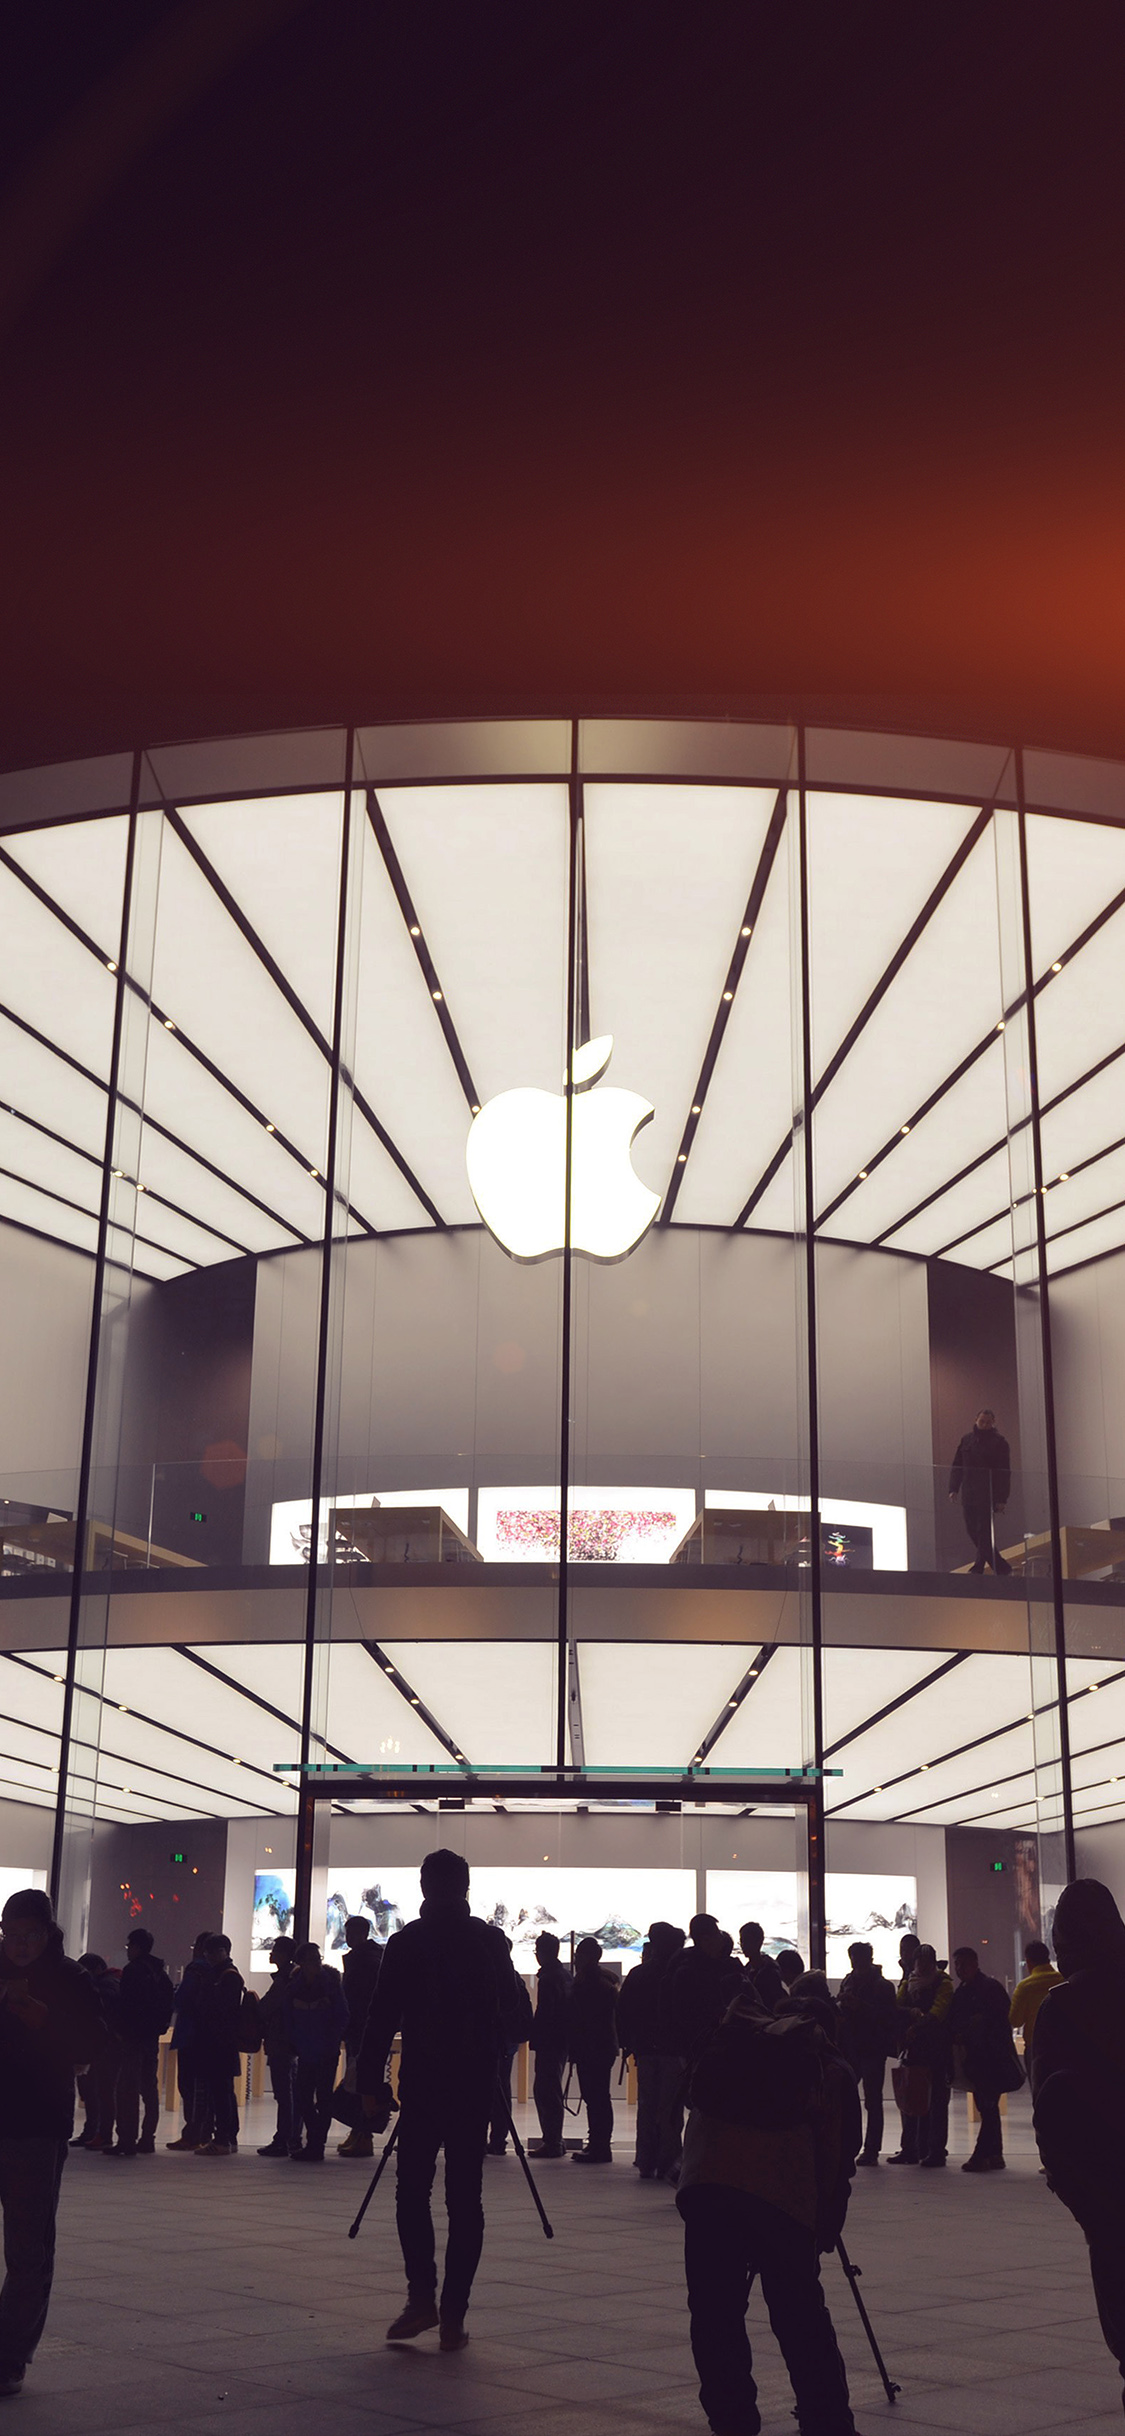 iPhoneXpapers.com-Apple-iPhone-wallpaper-aq19-photo-apple-store-event-city-architecture-flare